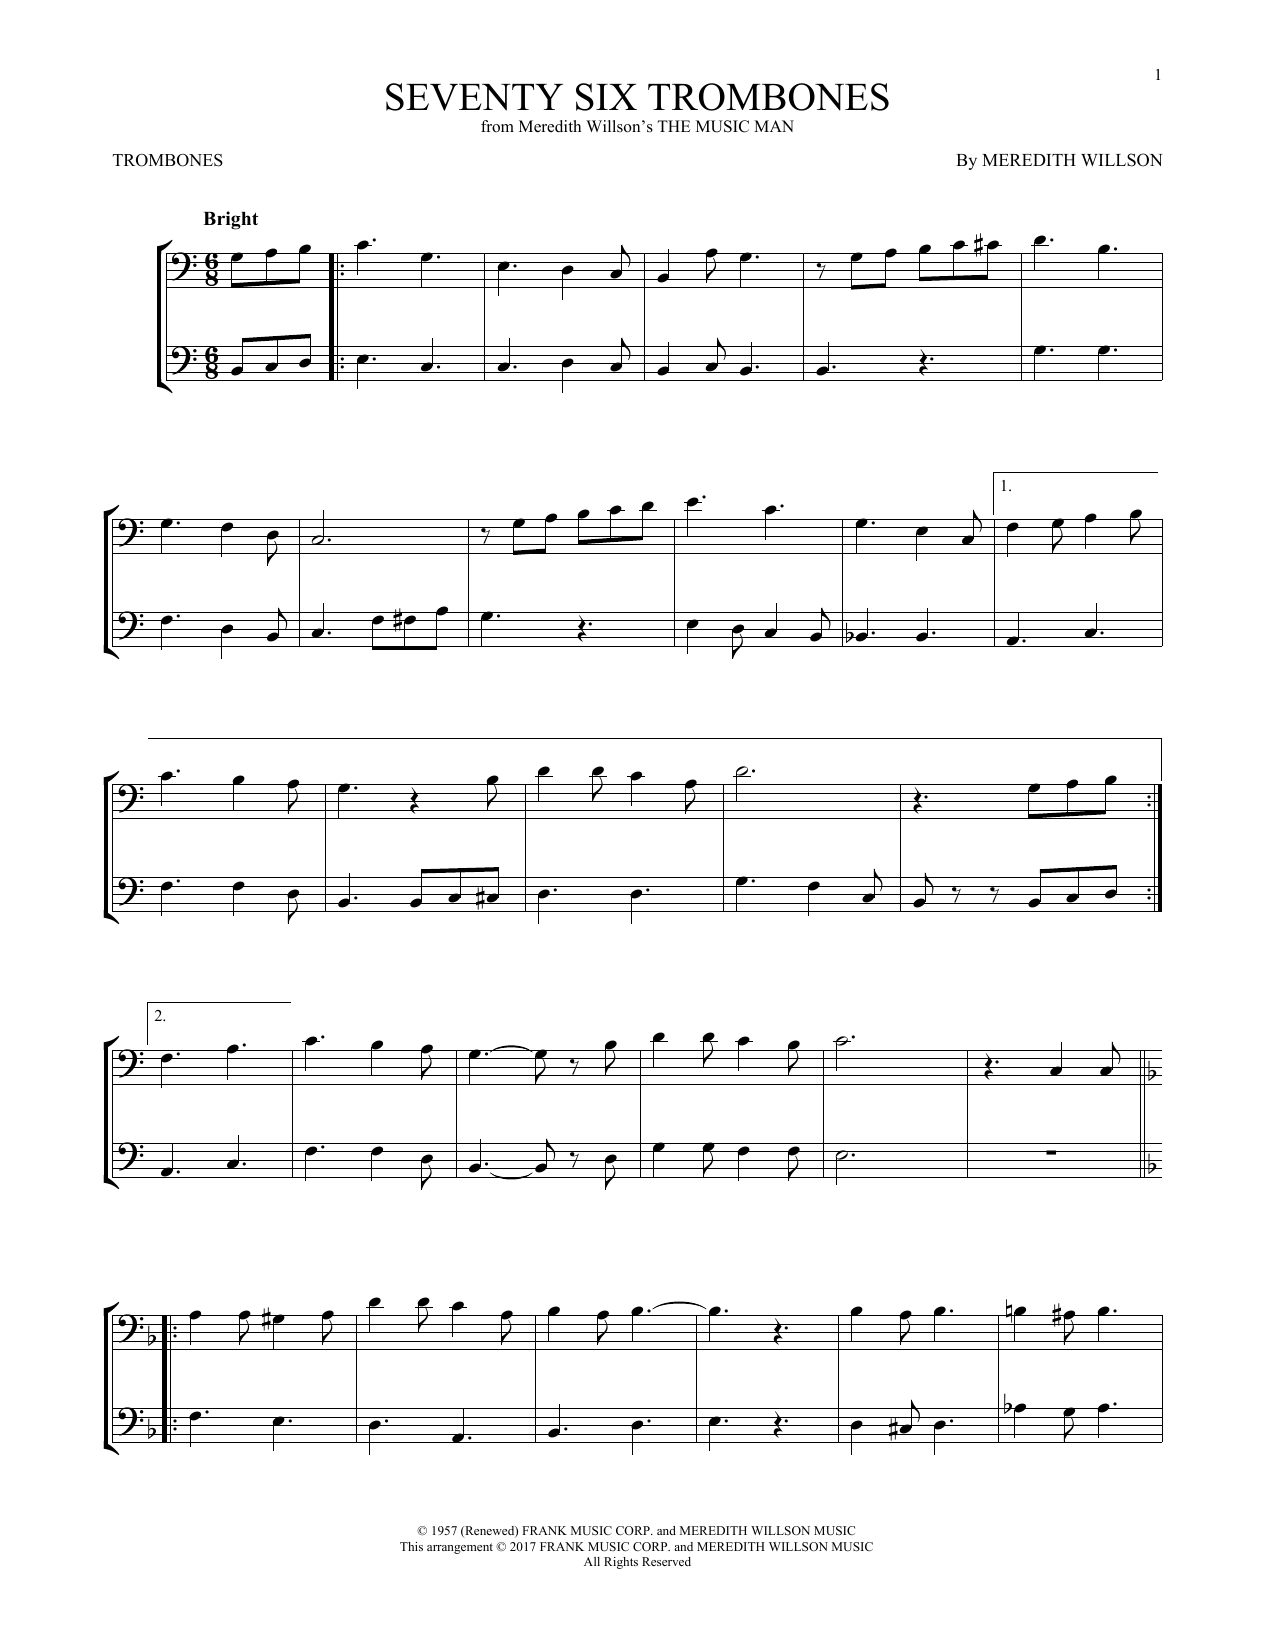 Meredith Willson Seventy Six Trombones (from The Music Man) sheet music notes and chords. Download Printable PDF.